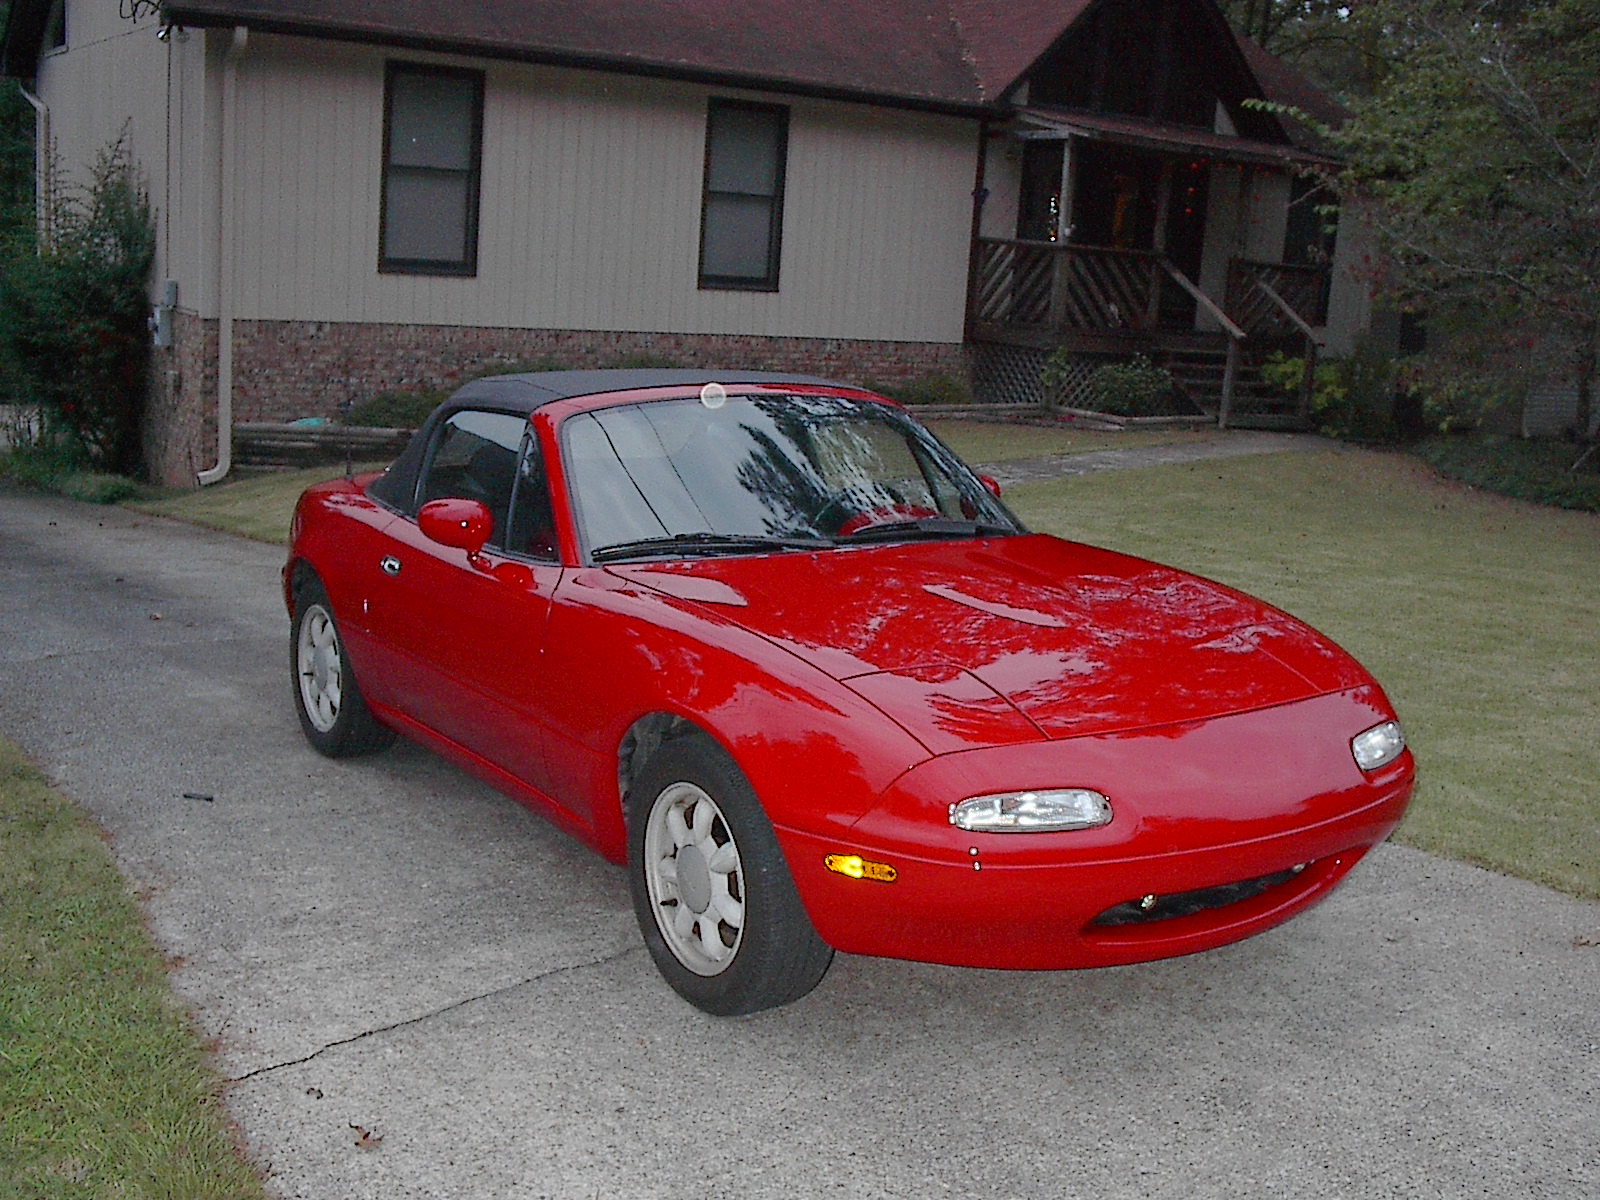 1990 Mazda Miata MX5 Turbo